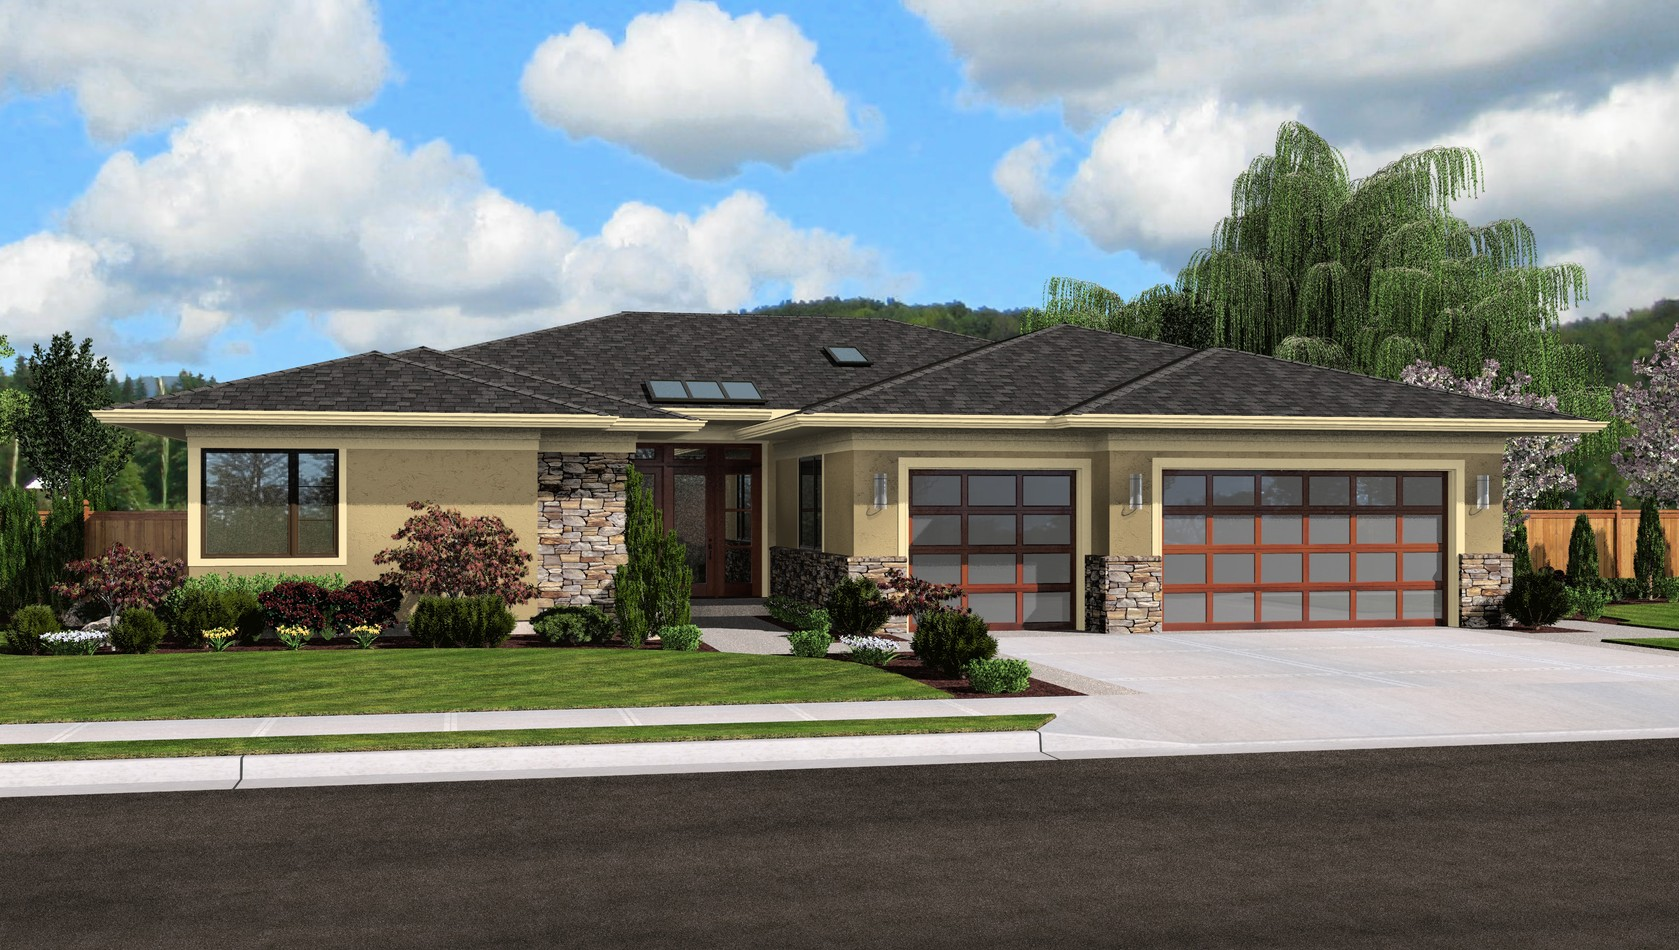 Main image for house plan 1245 the riverside